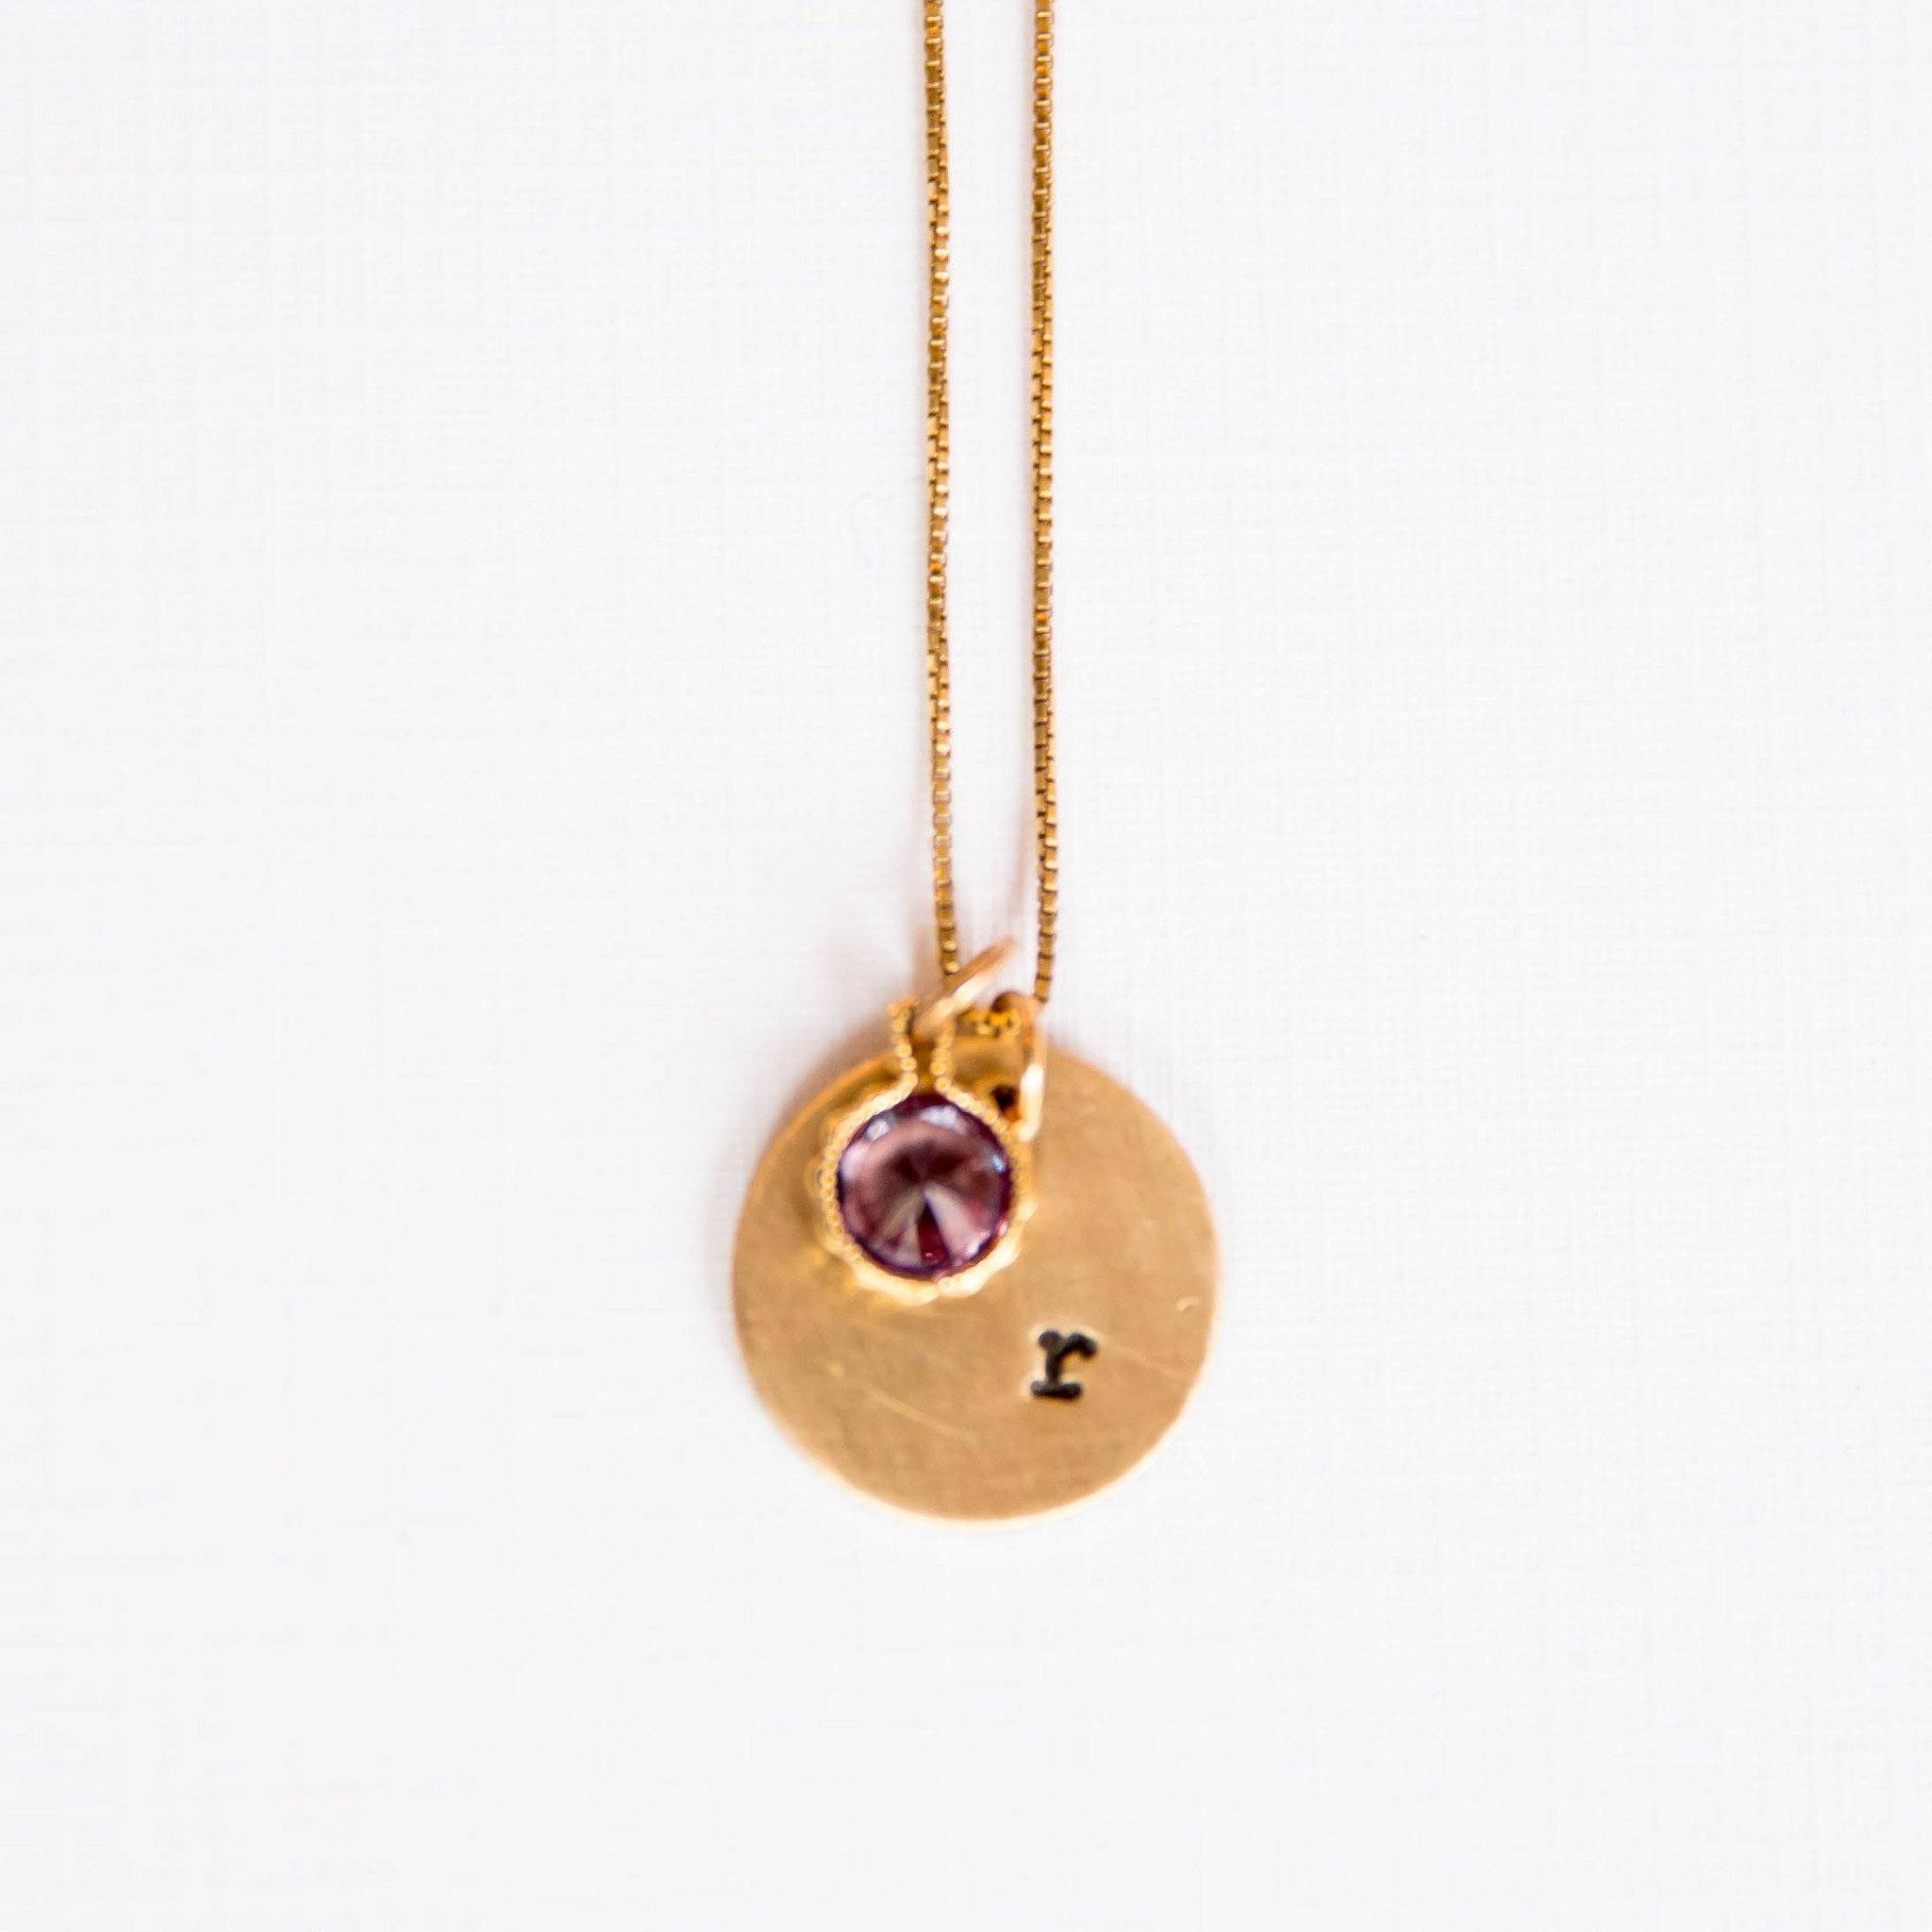 Sympathy gifts memorial gifts bereavement gifts condolence initial necklace with birthstone grogans mill gifts negle Image collections